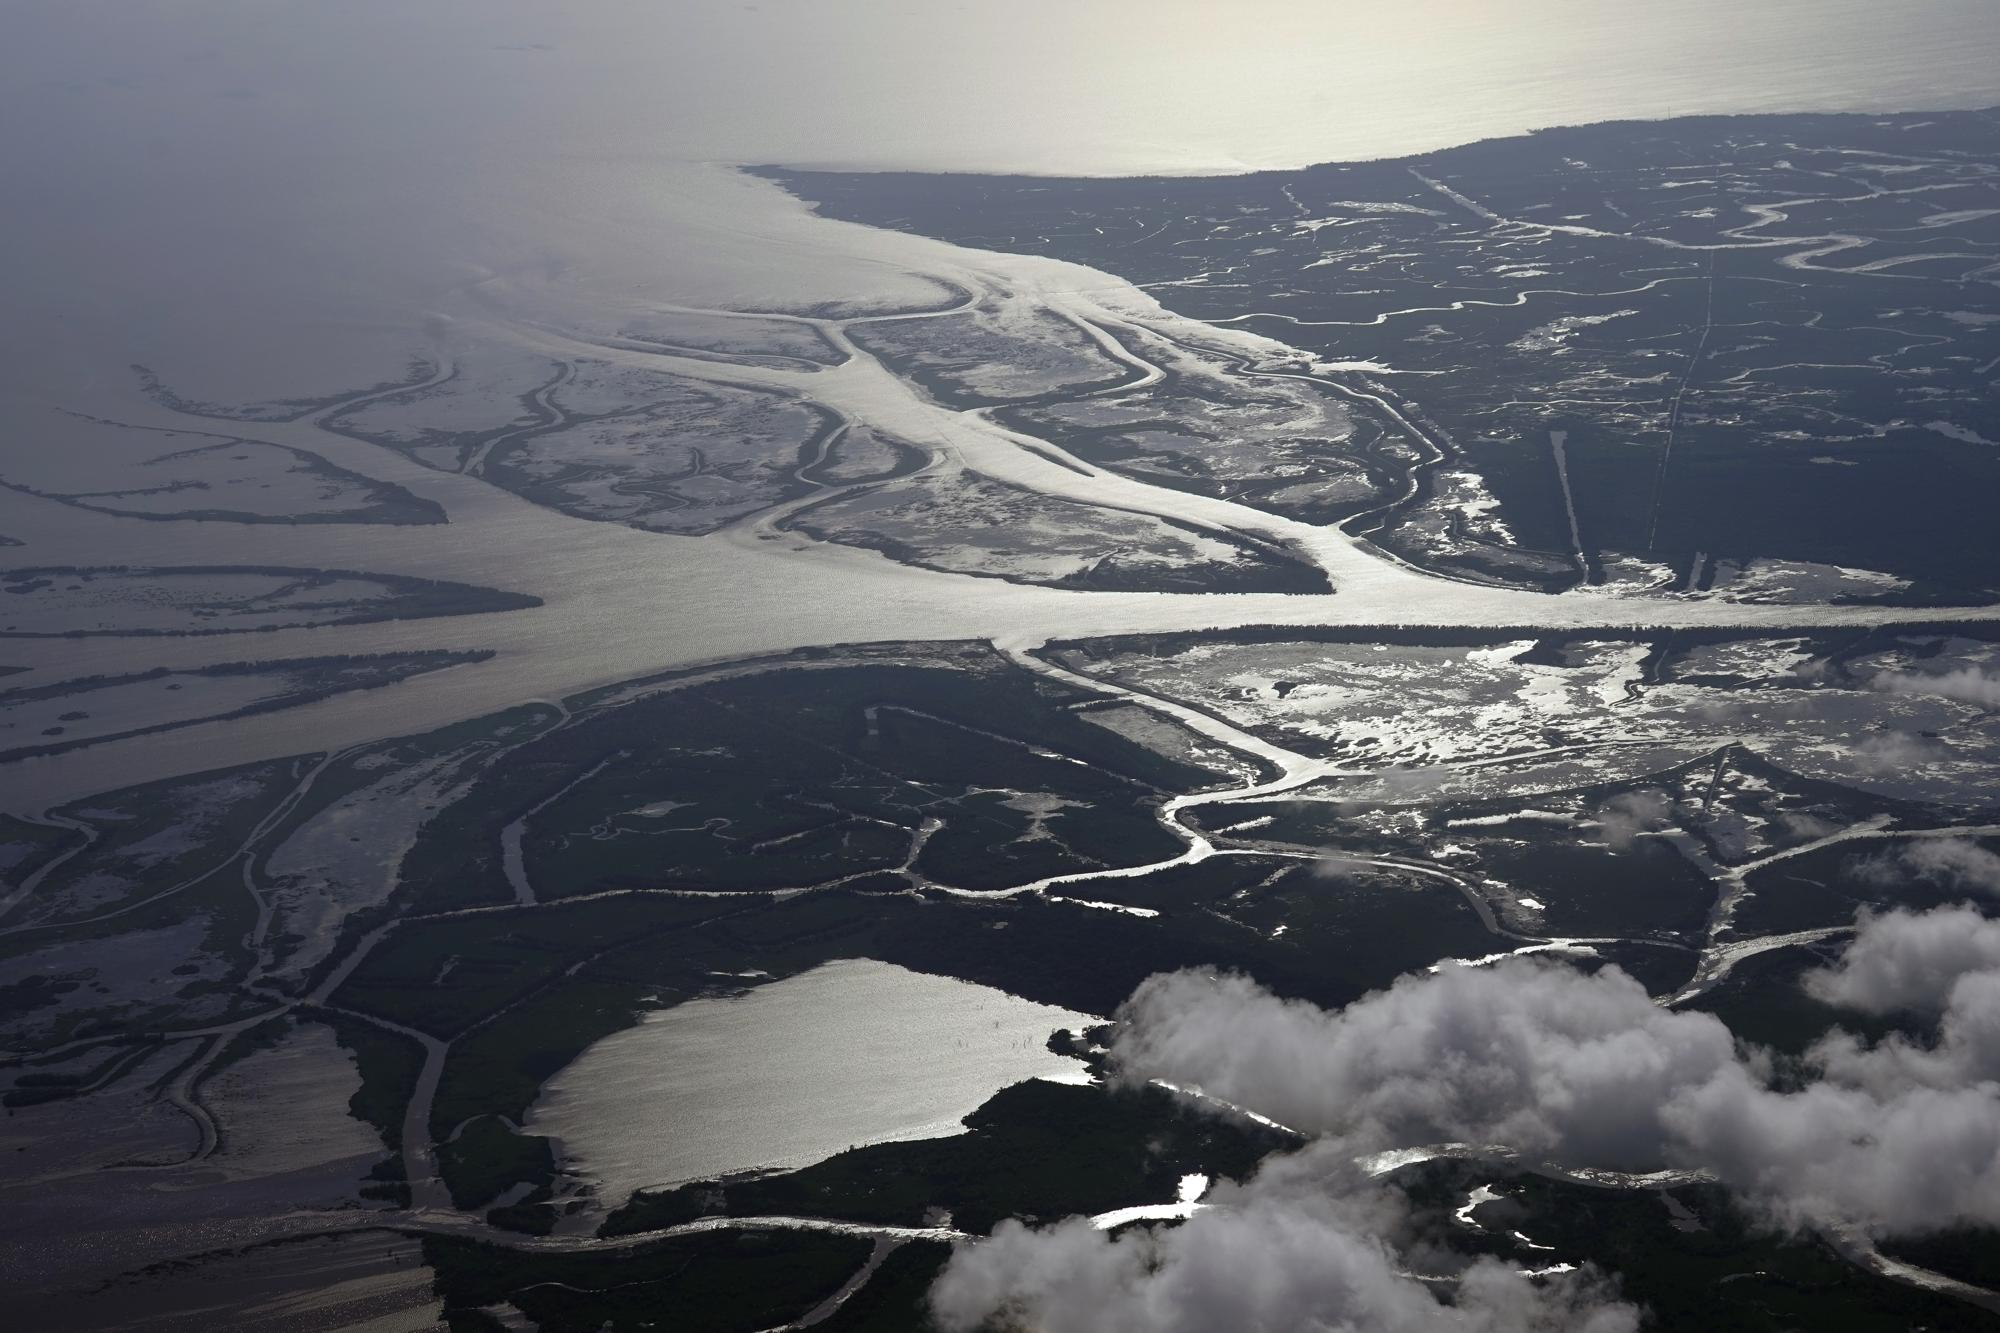 The Wax Lake Delta in the Atchafalaya Basin is seen from 8,500 feet in St. Mary Parish, La., Tuesday, May 25, 2021. (AP Photo/Gerald Herbert)